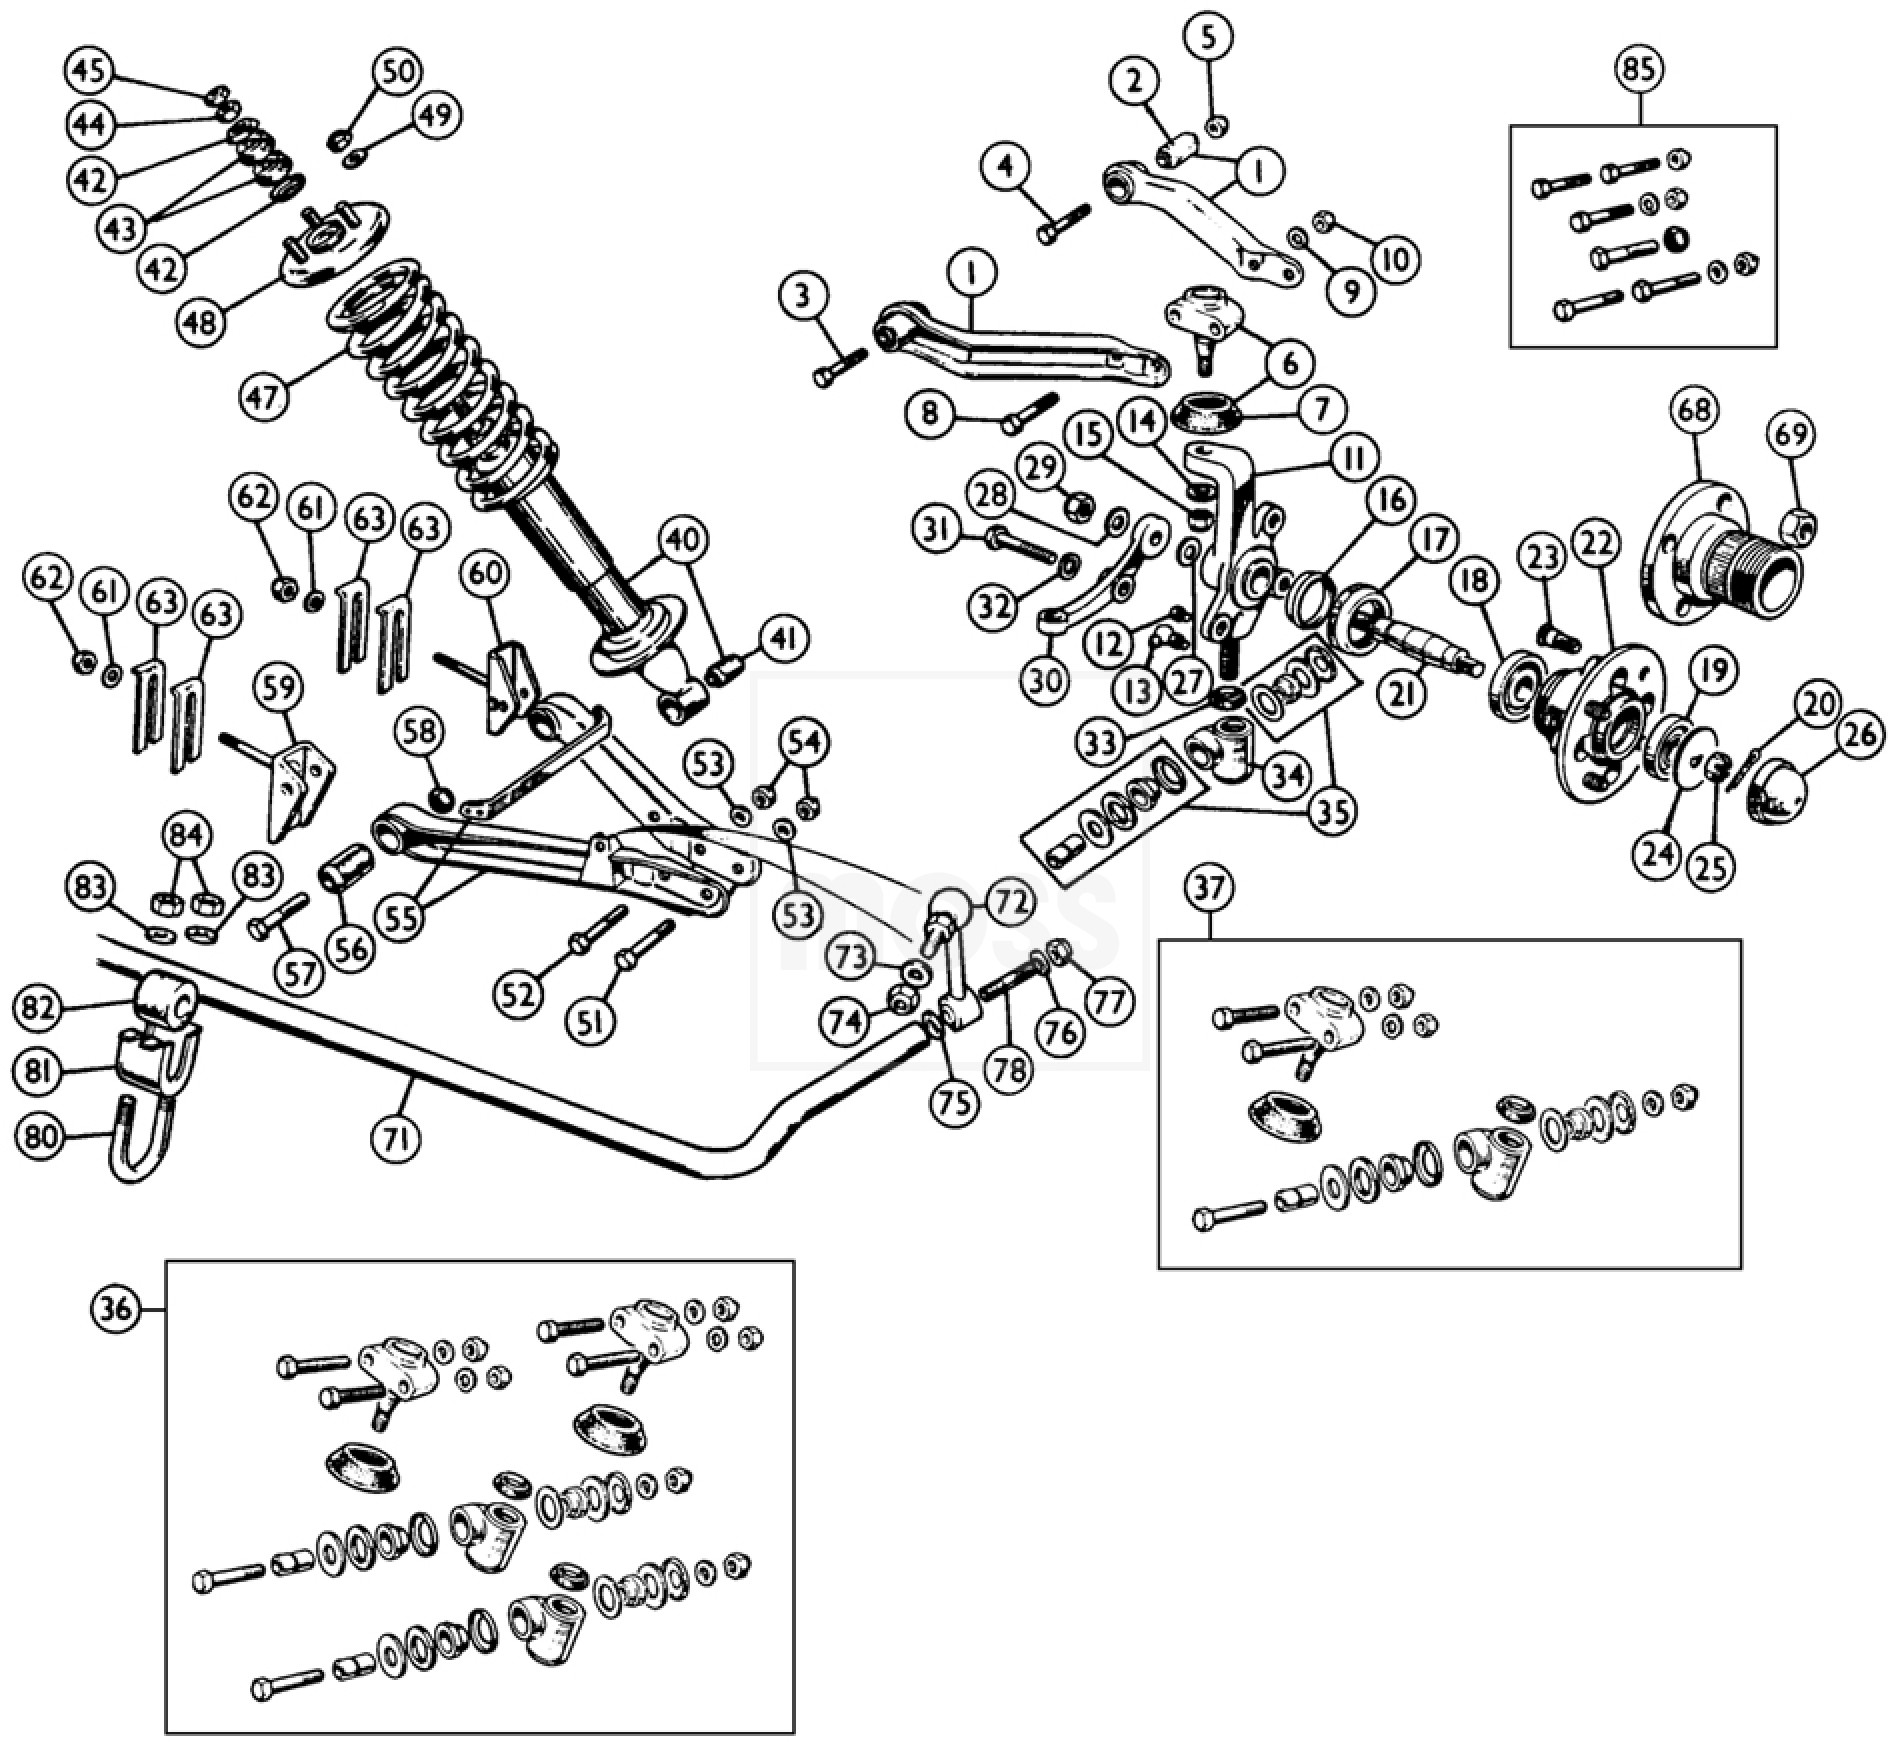 [DIAGRAM] 76 Mg Midget Wiring Diagram FULL Version HD